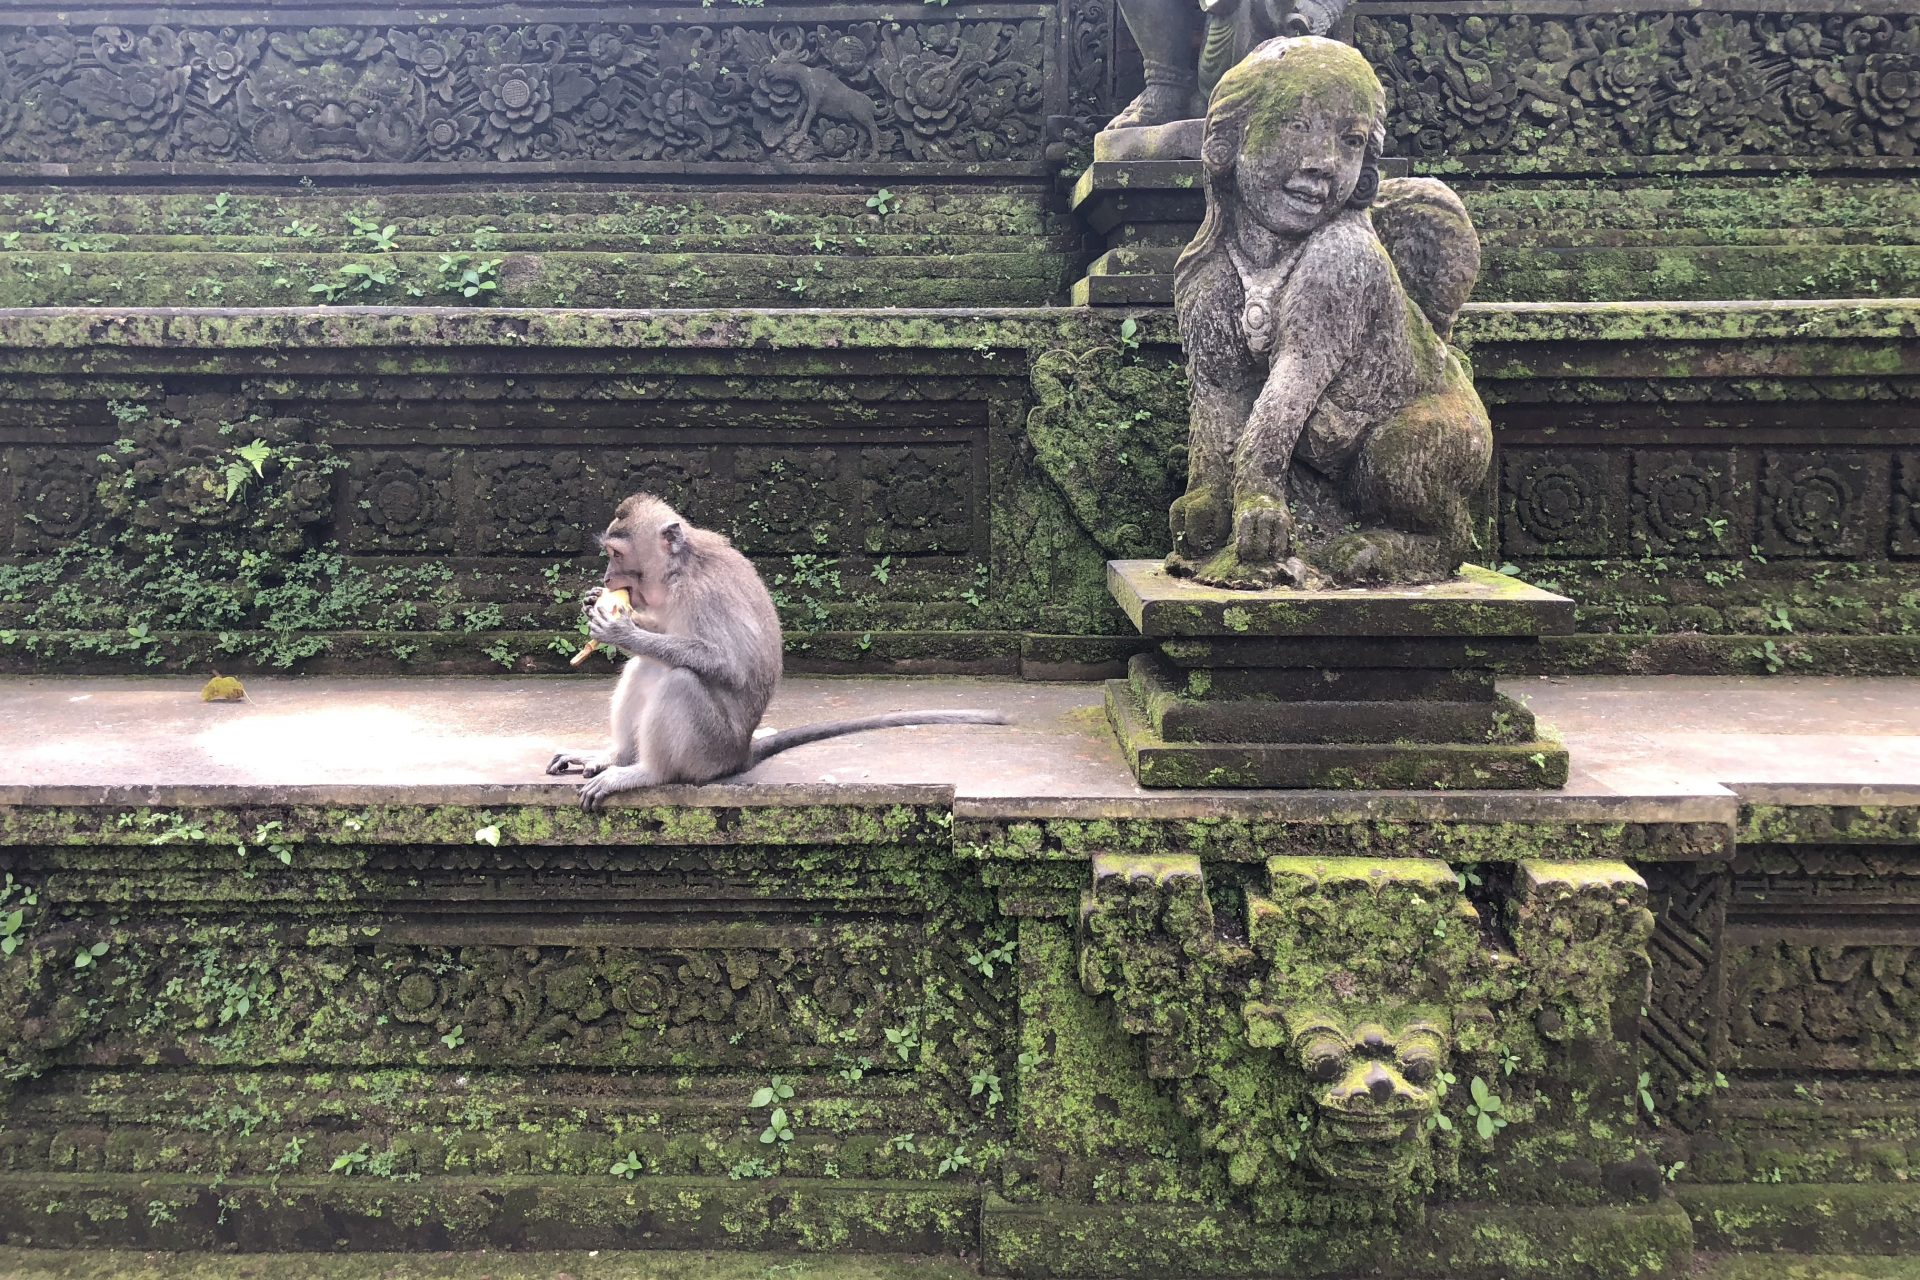 Visiting the Monkey Forest Ubud Bali Indonesia Stuff to do in Bali Bali Attractions